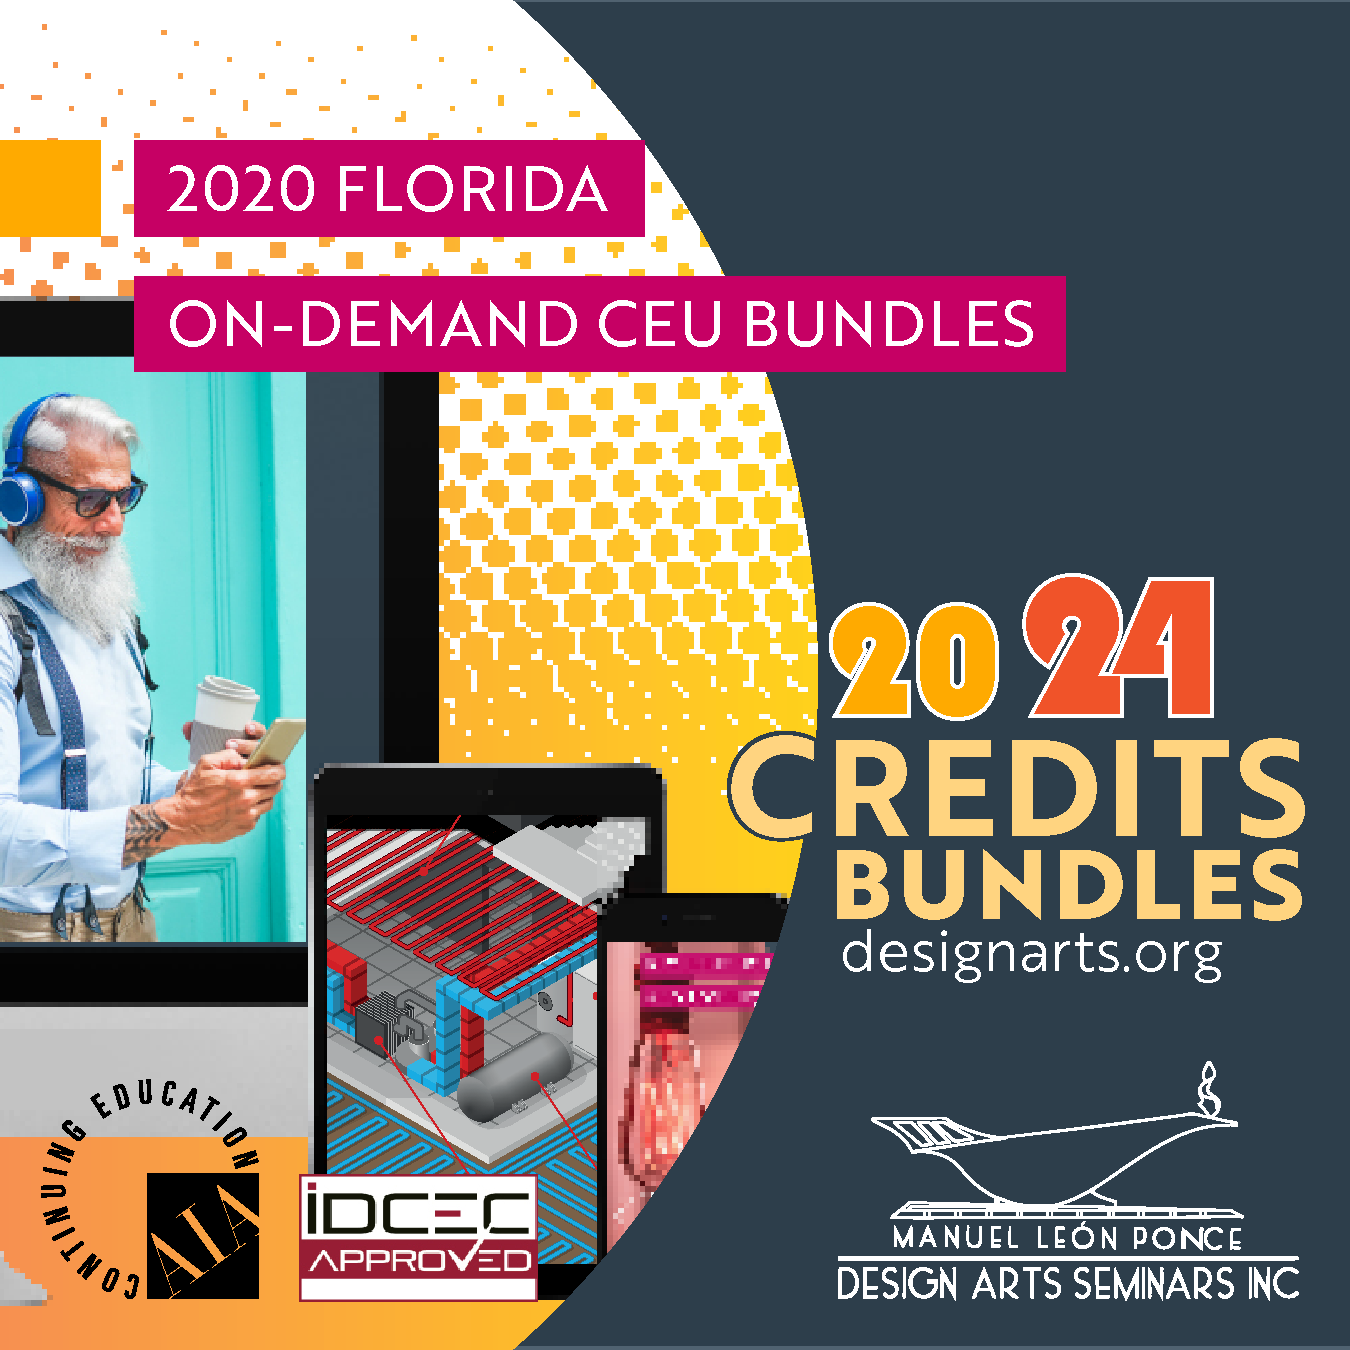 Florida Interior Design and Architecture Bundles